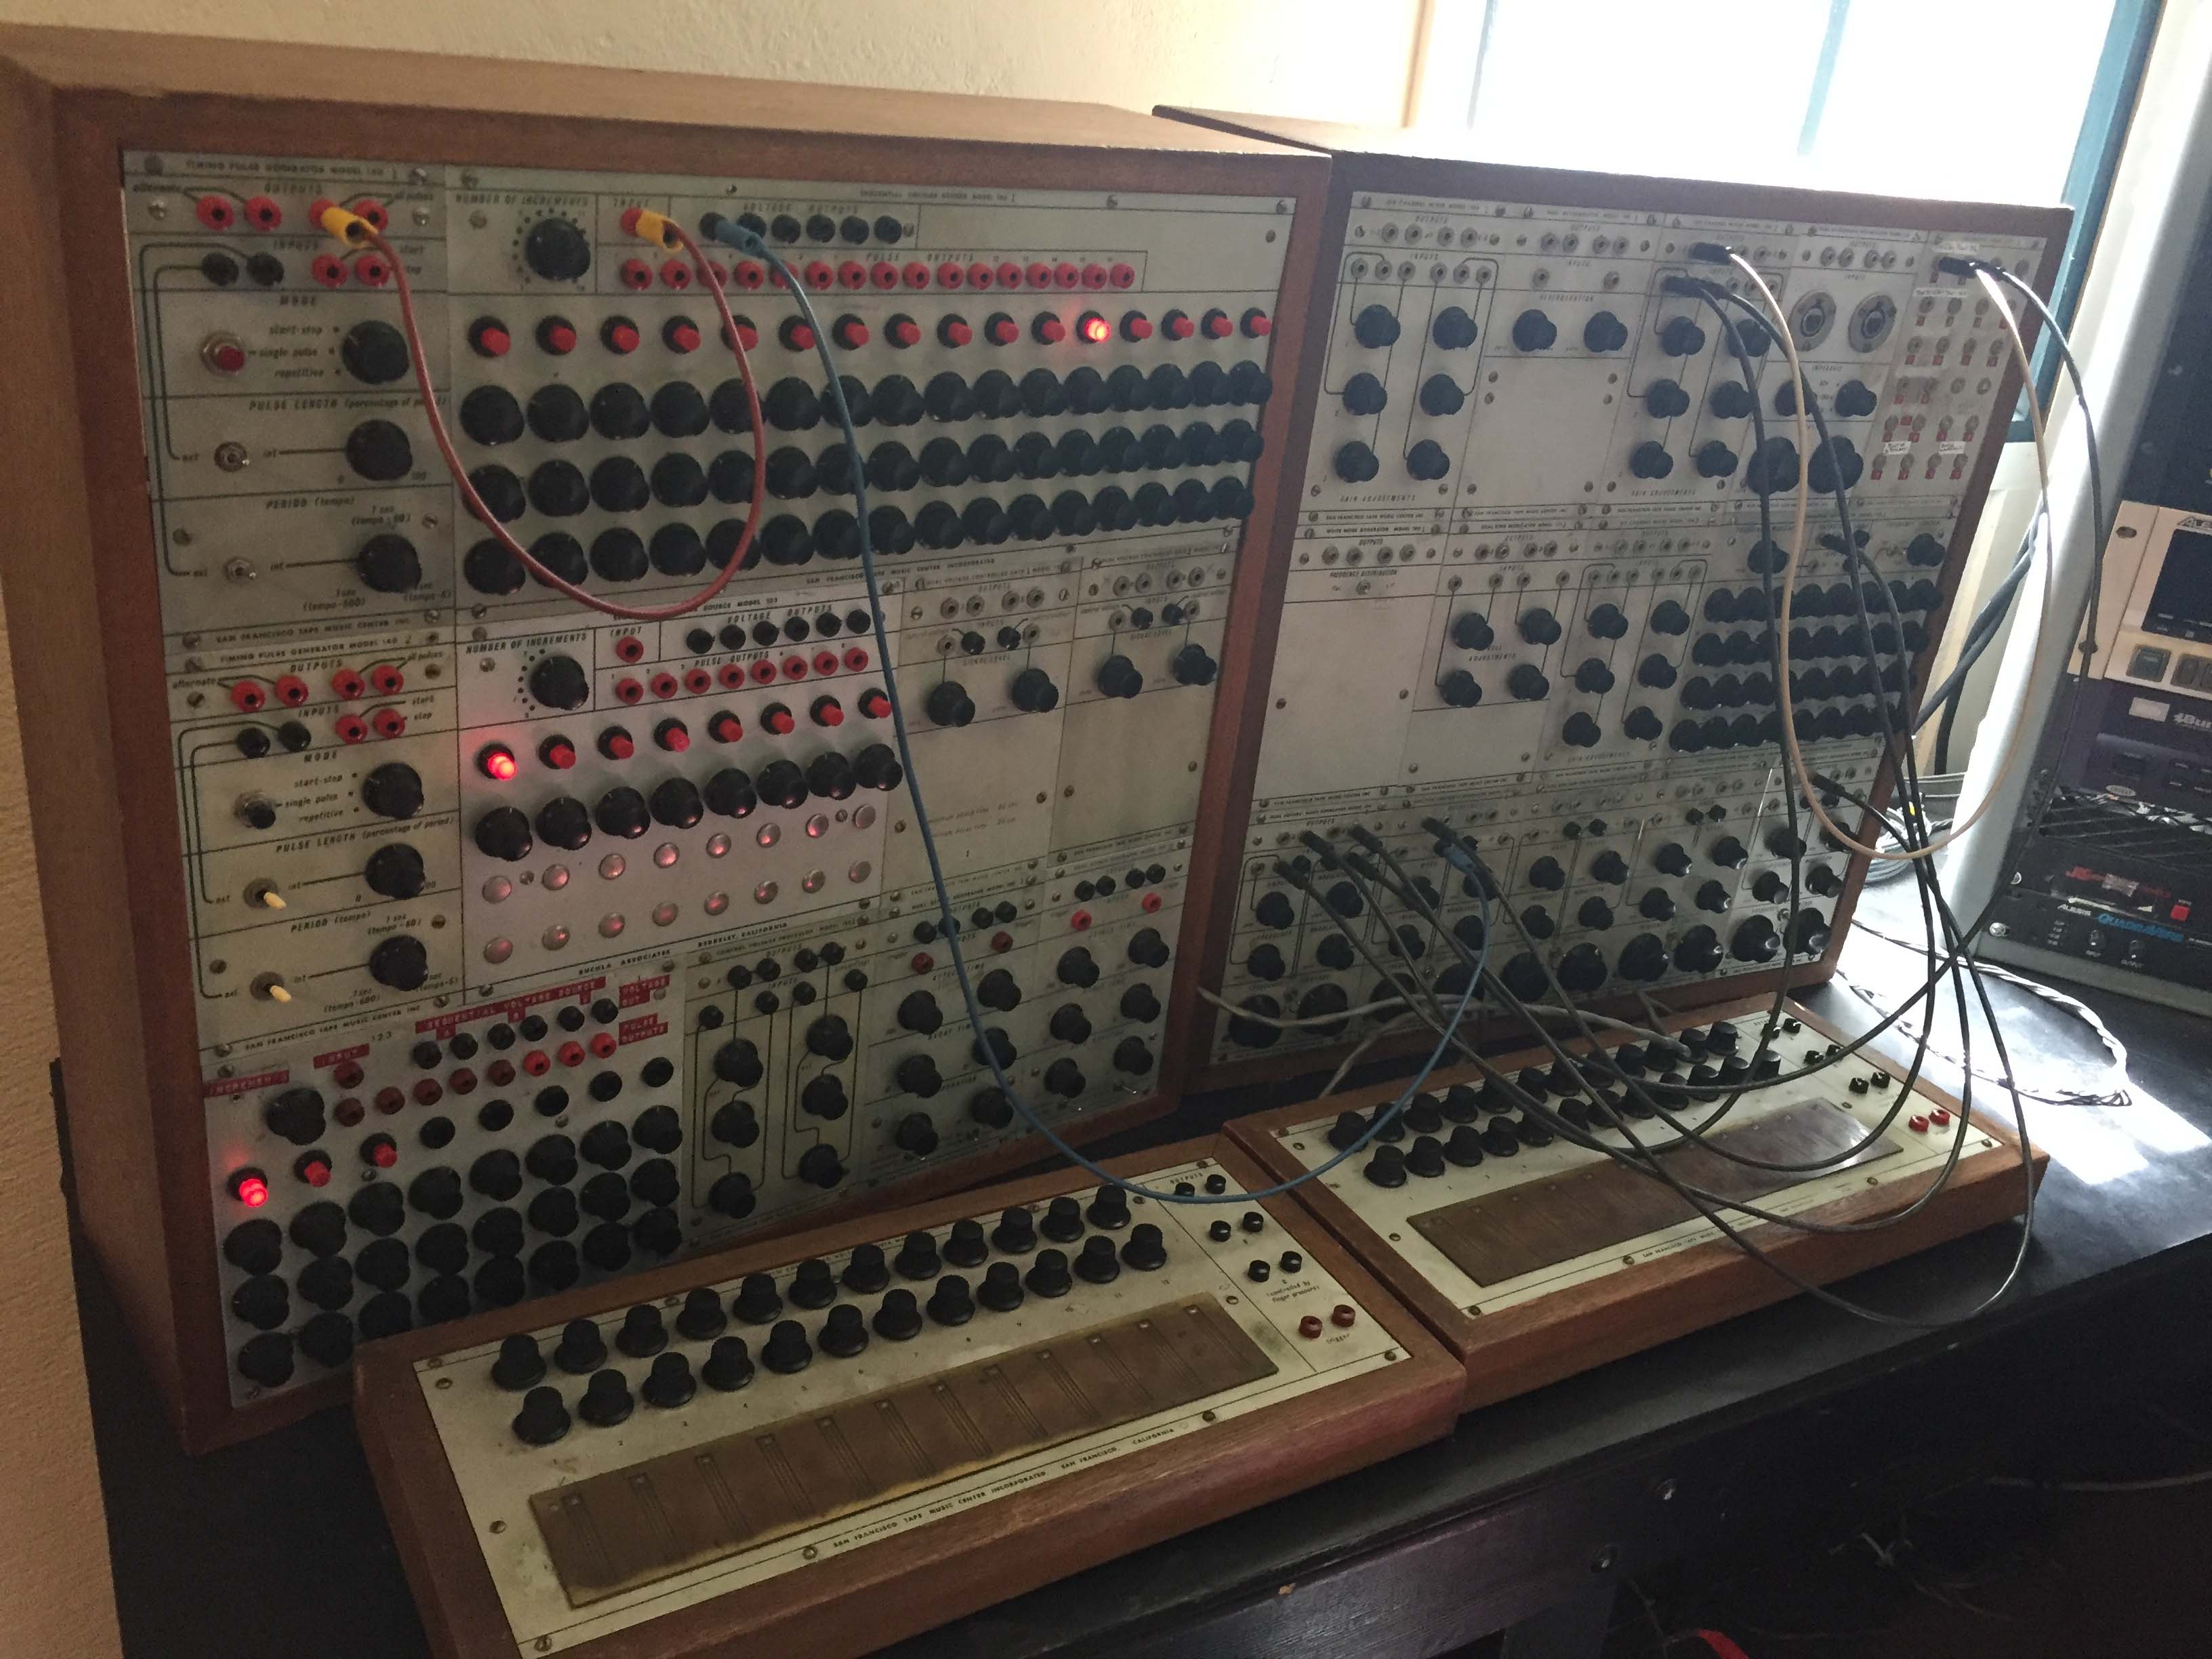 Donald Buchla's Modular Electronic Music System at Mills College, 2016. (Photo © Ted Gordon 2016).